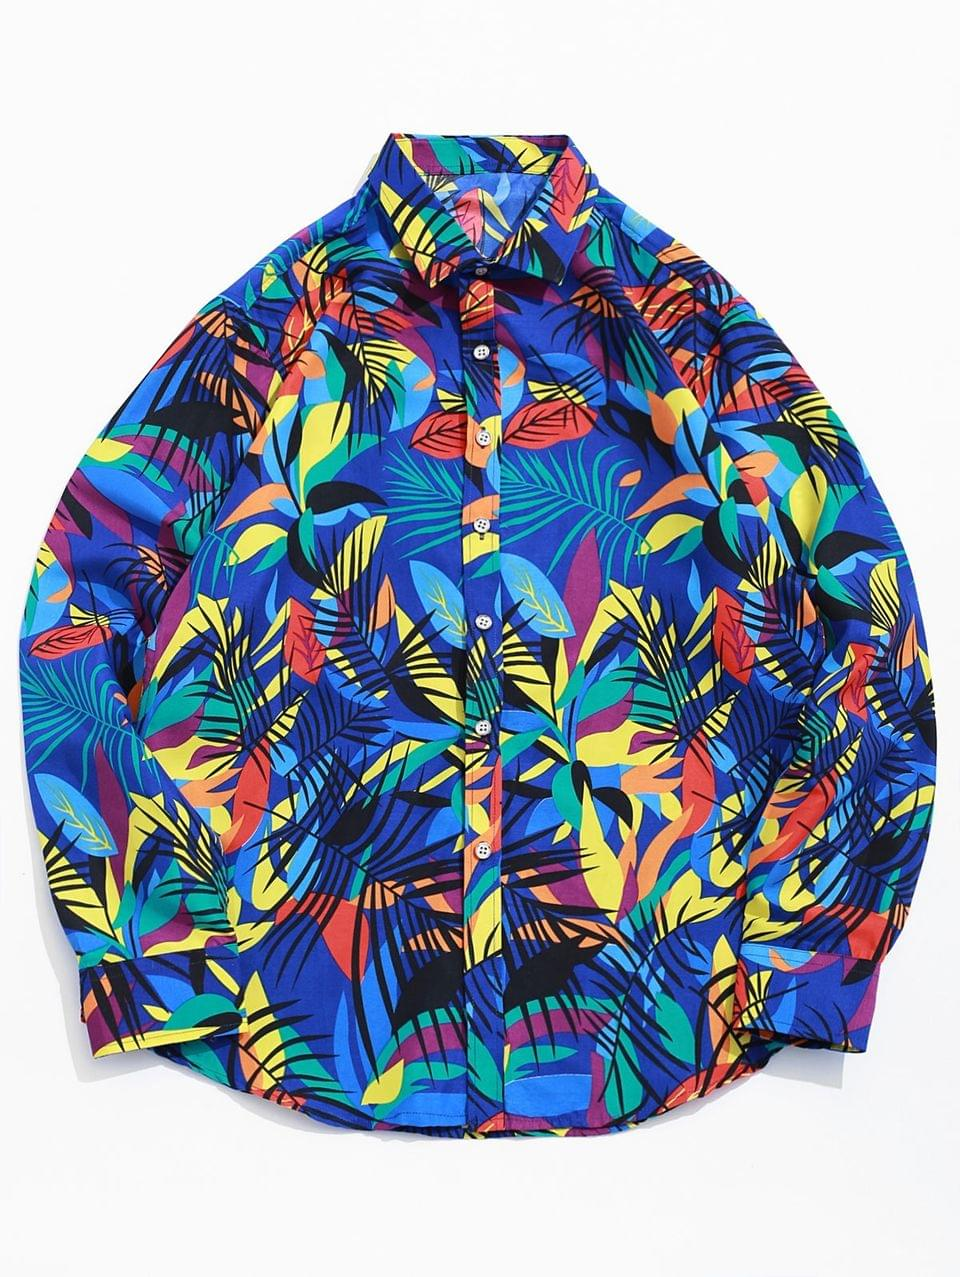 Men's Colored Tropical Leaf Print Button Beach Vacation Shirt - Blue 2xl